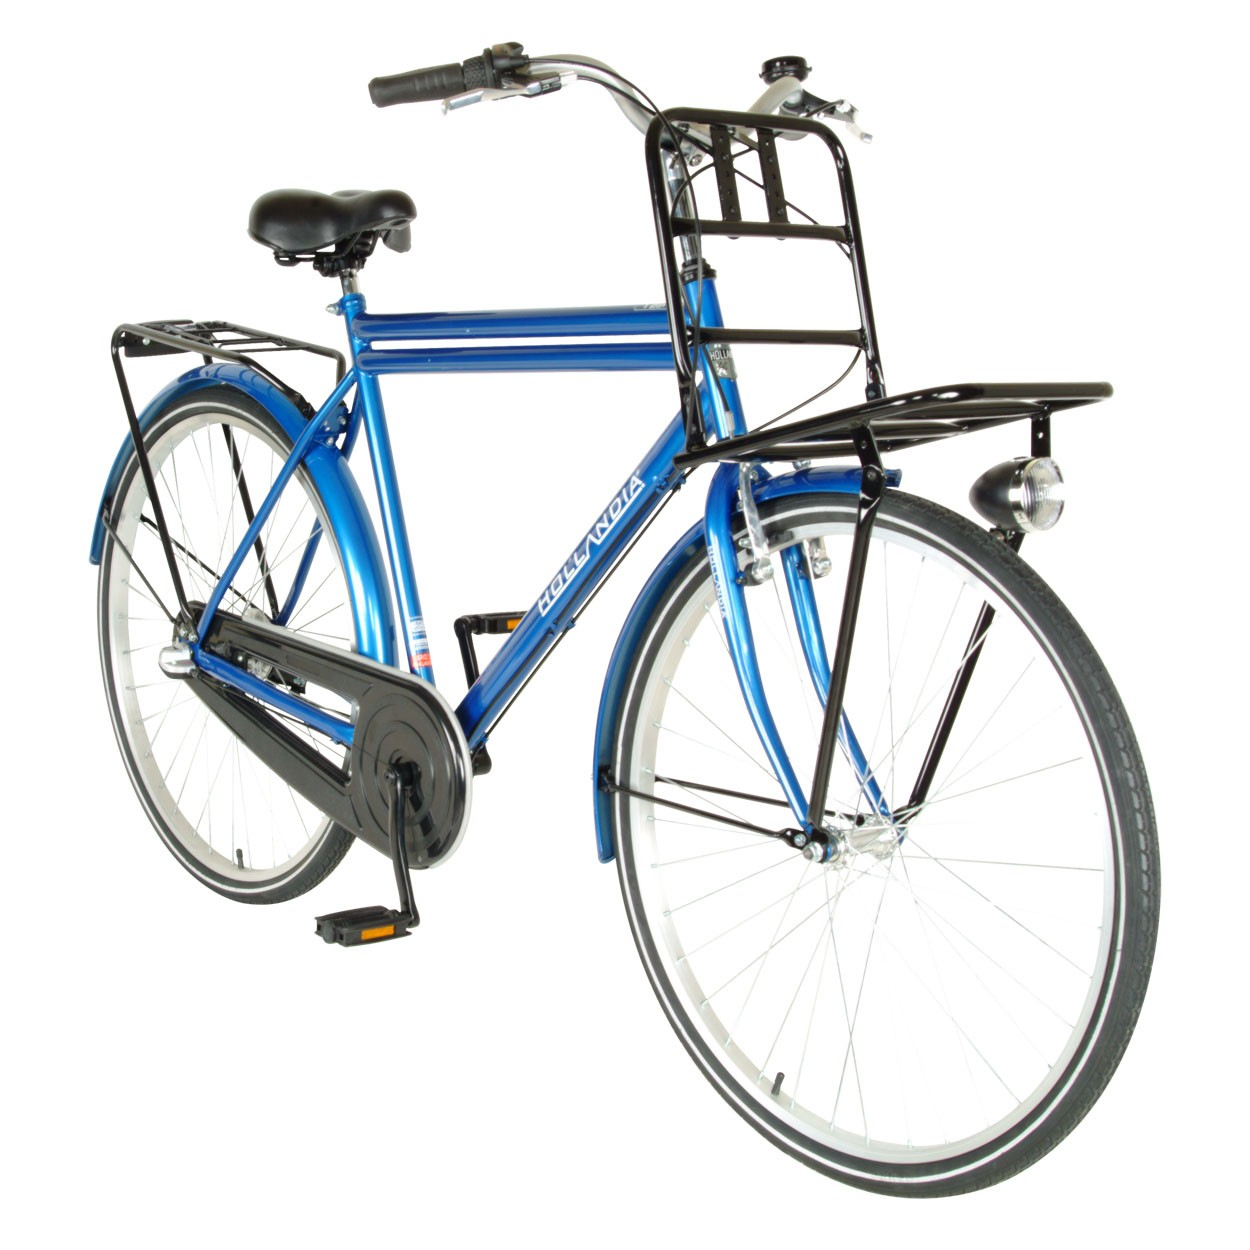 Hollandia Amsterdam 28 inch Bike (Mutliple Colors)